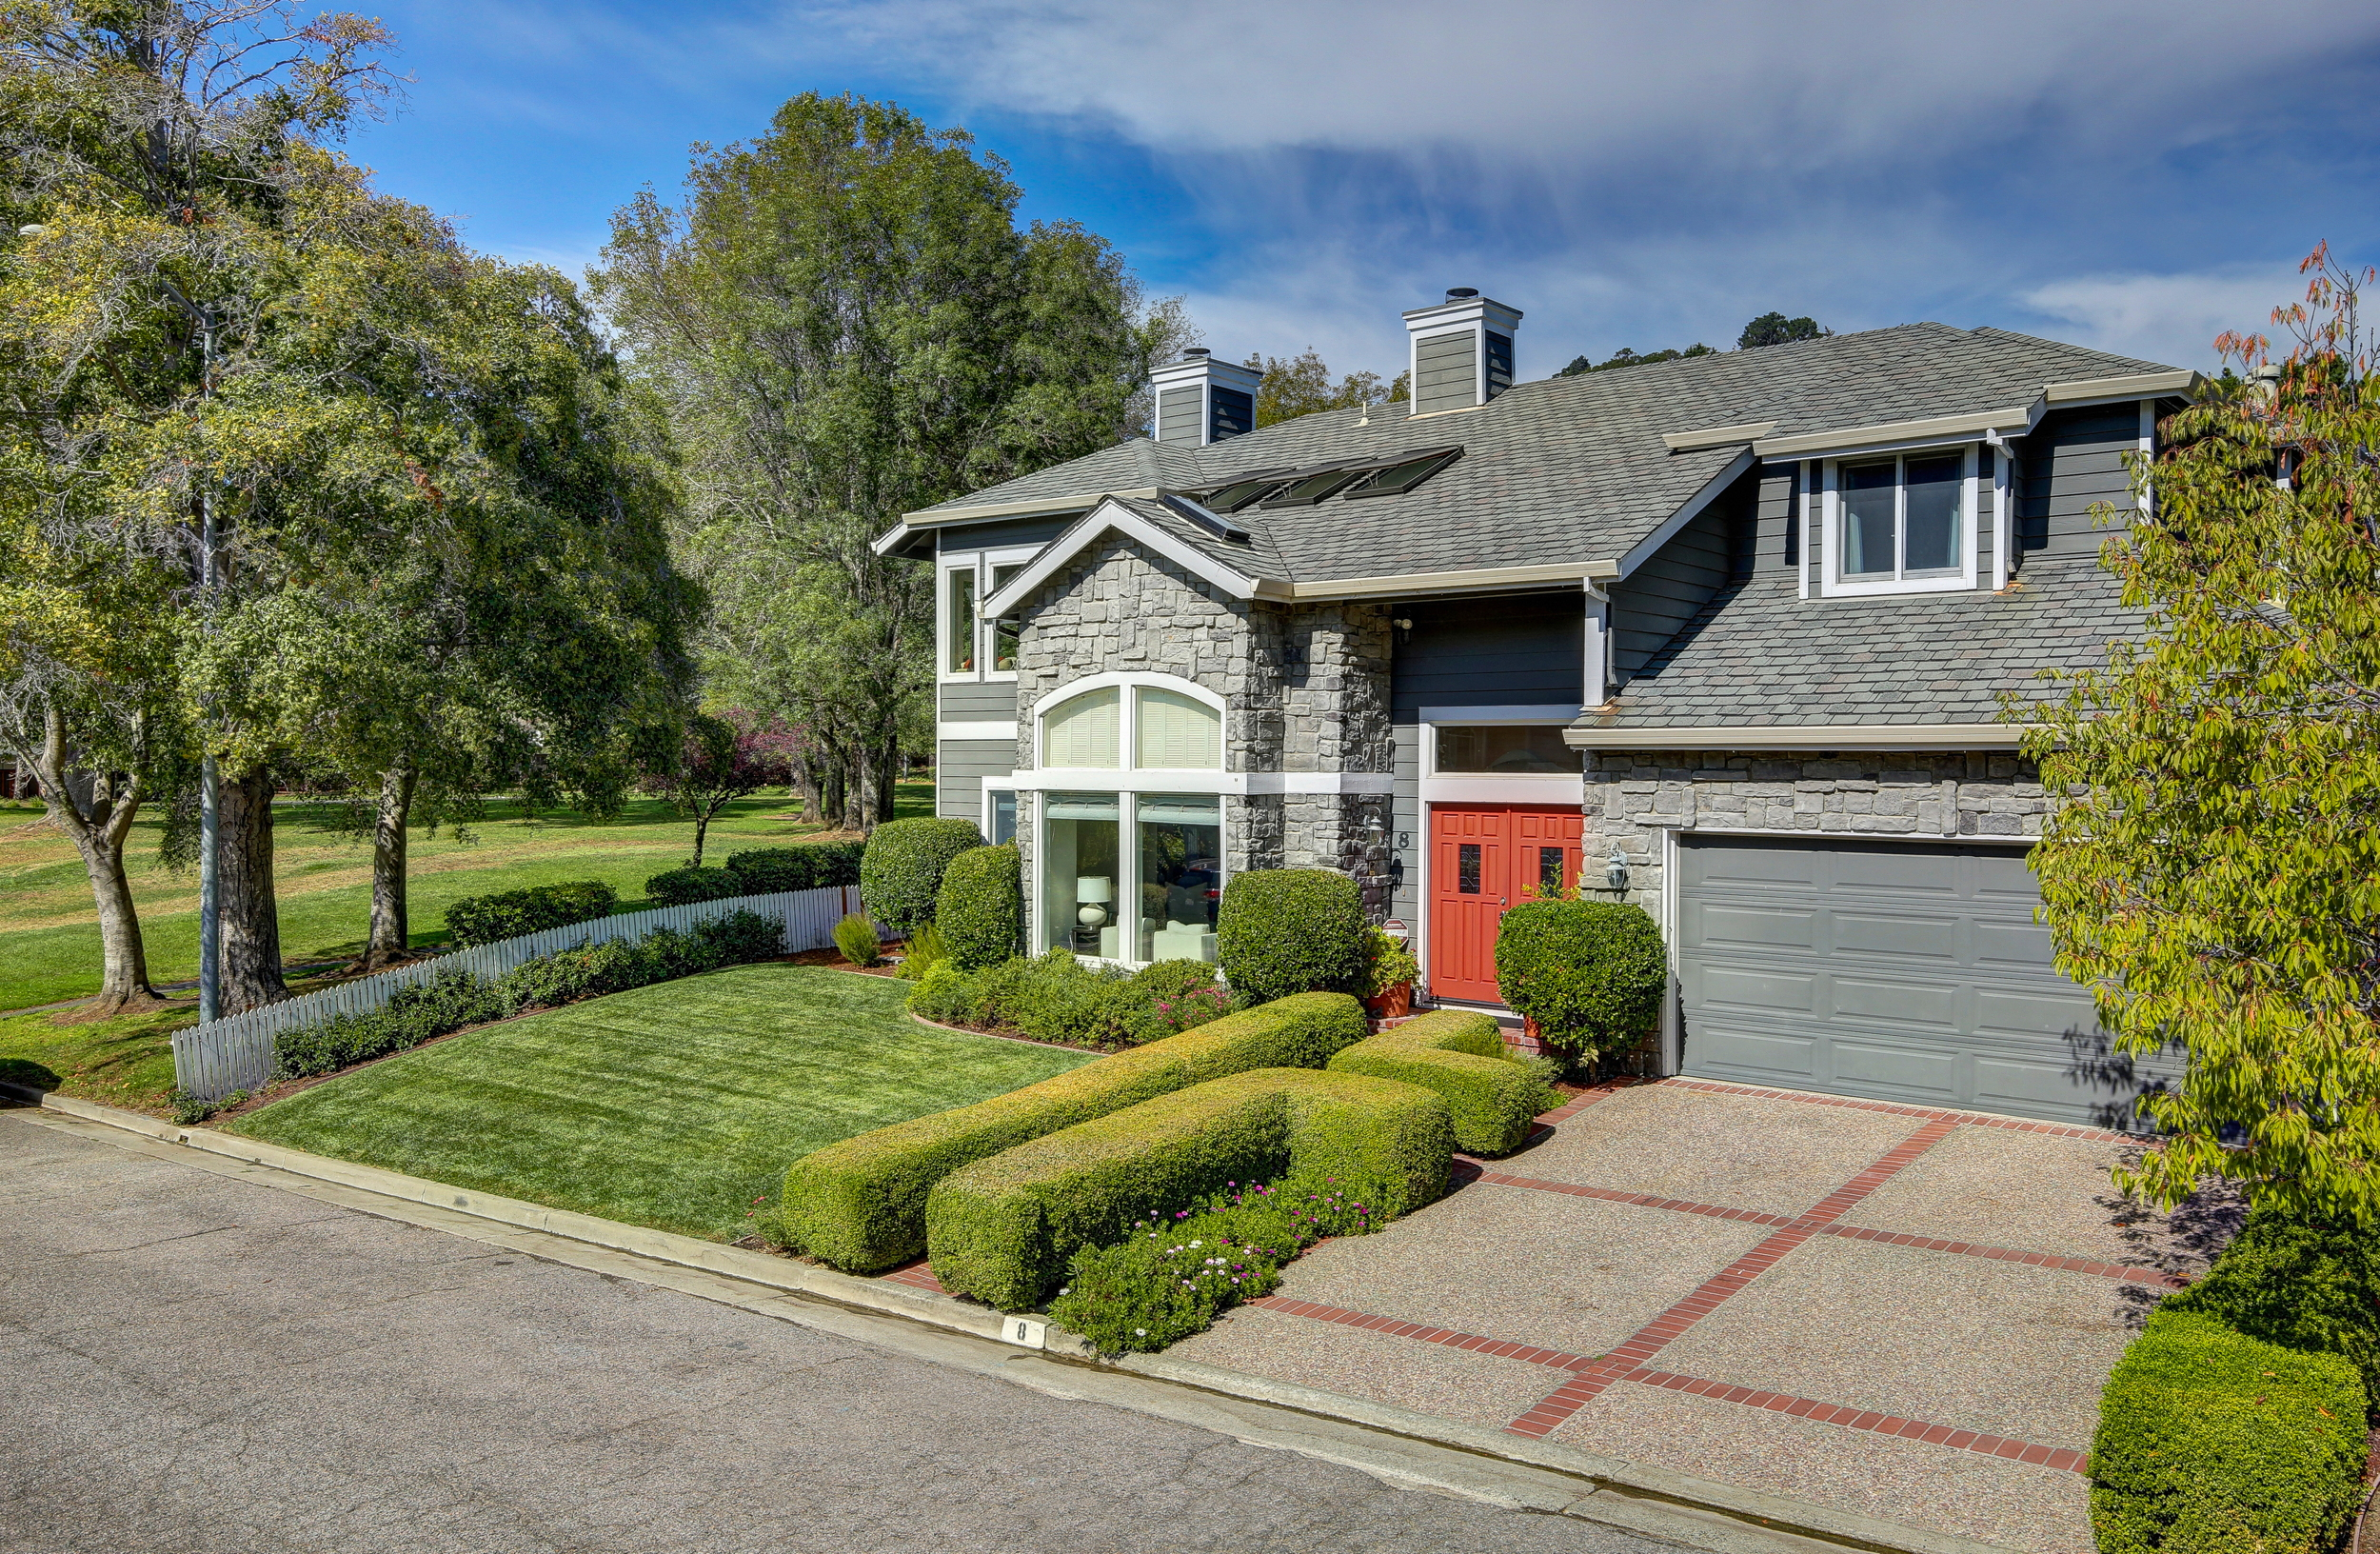 8Parkside 04 - Own Marin with Compass - Marin County Best Realtor.jpg